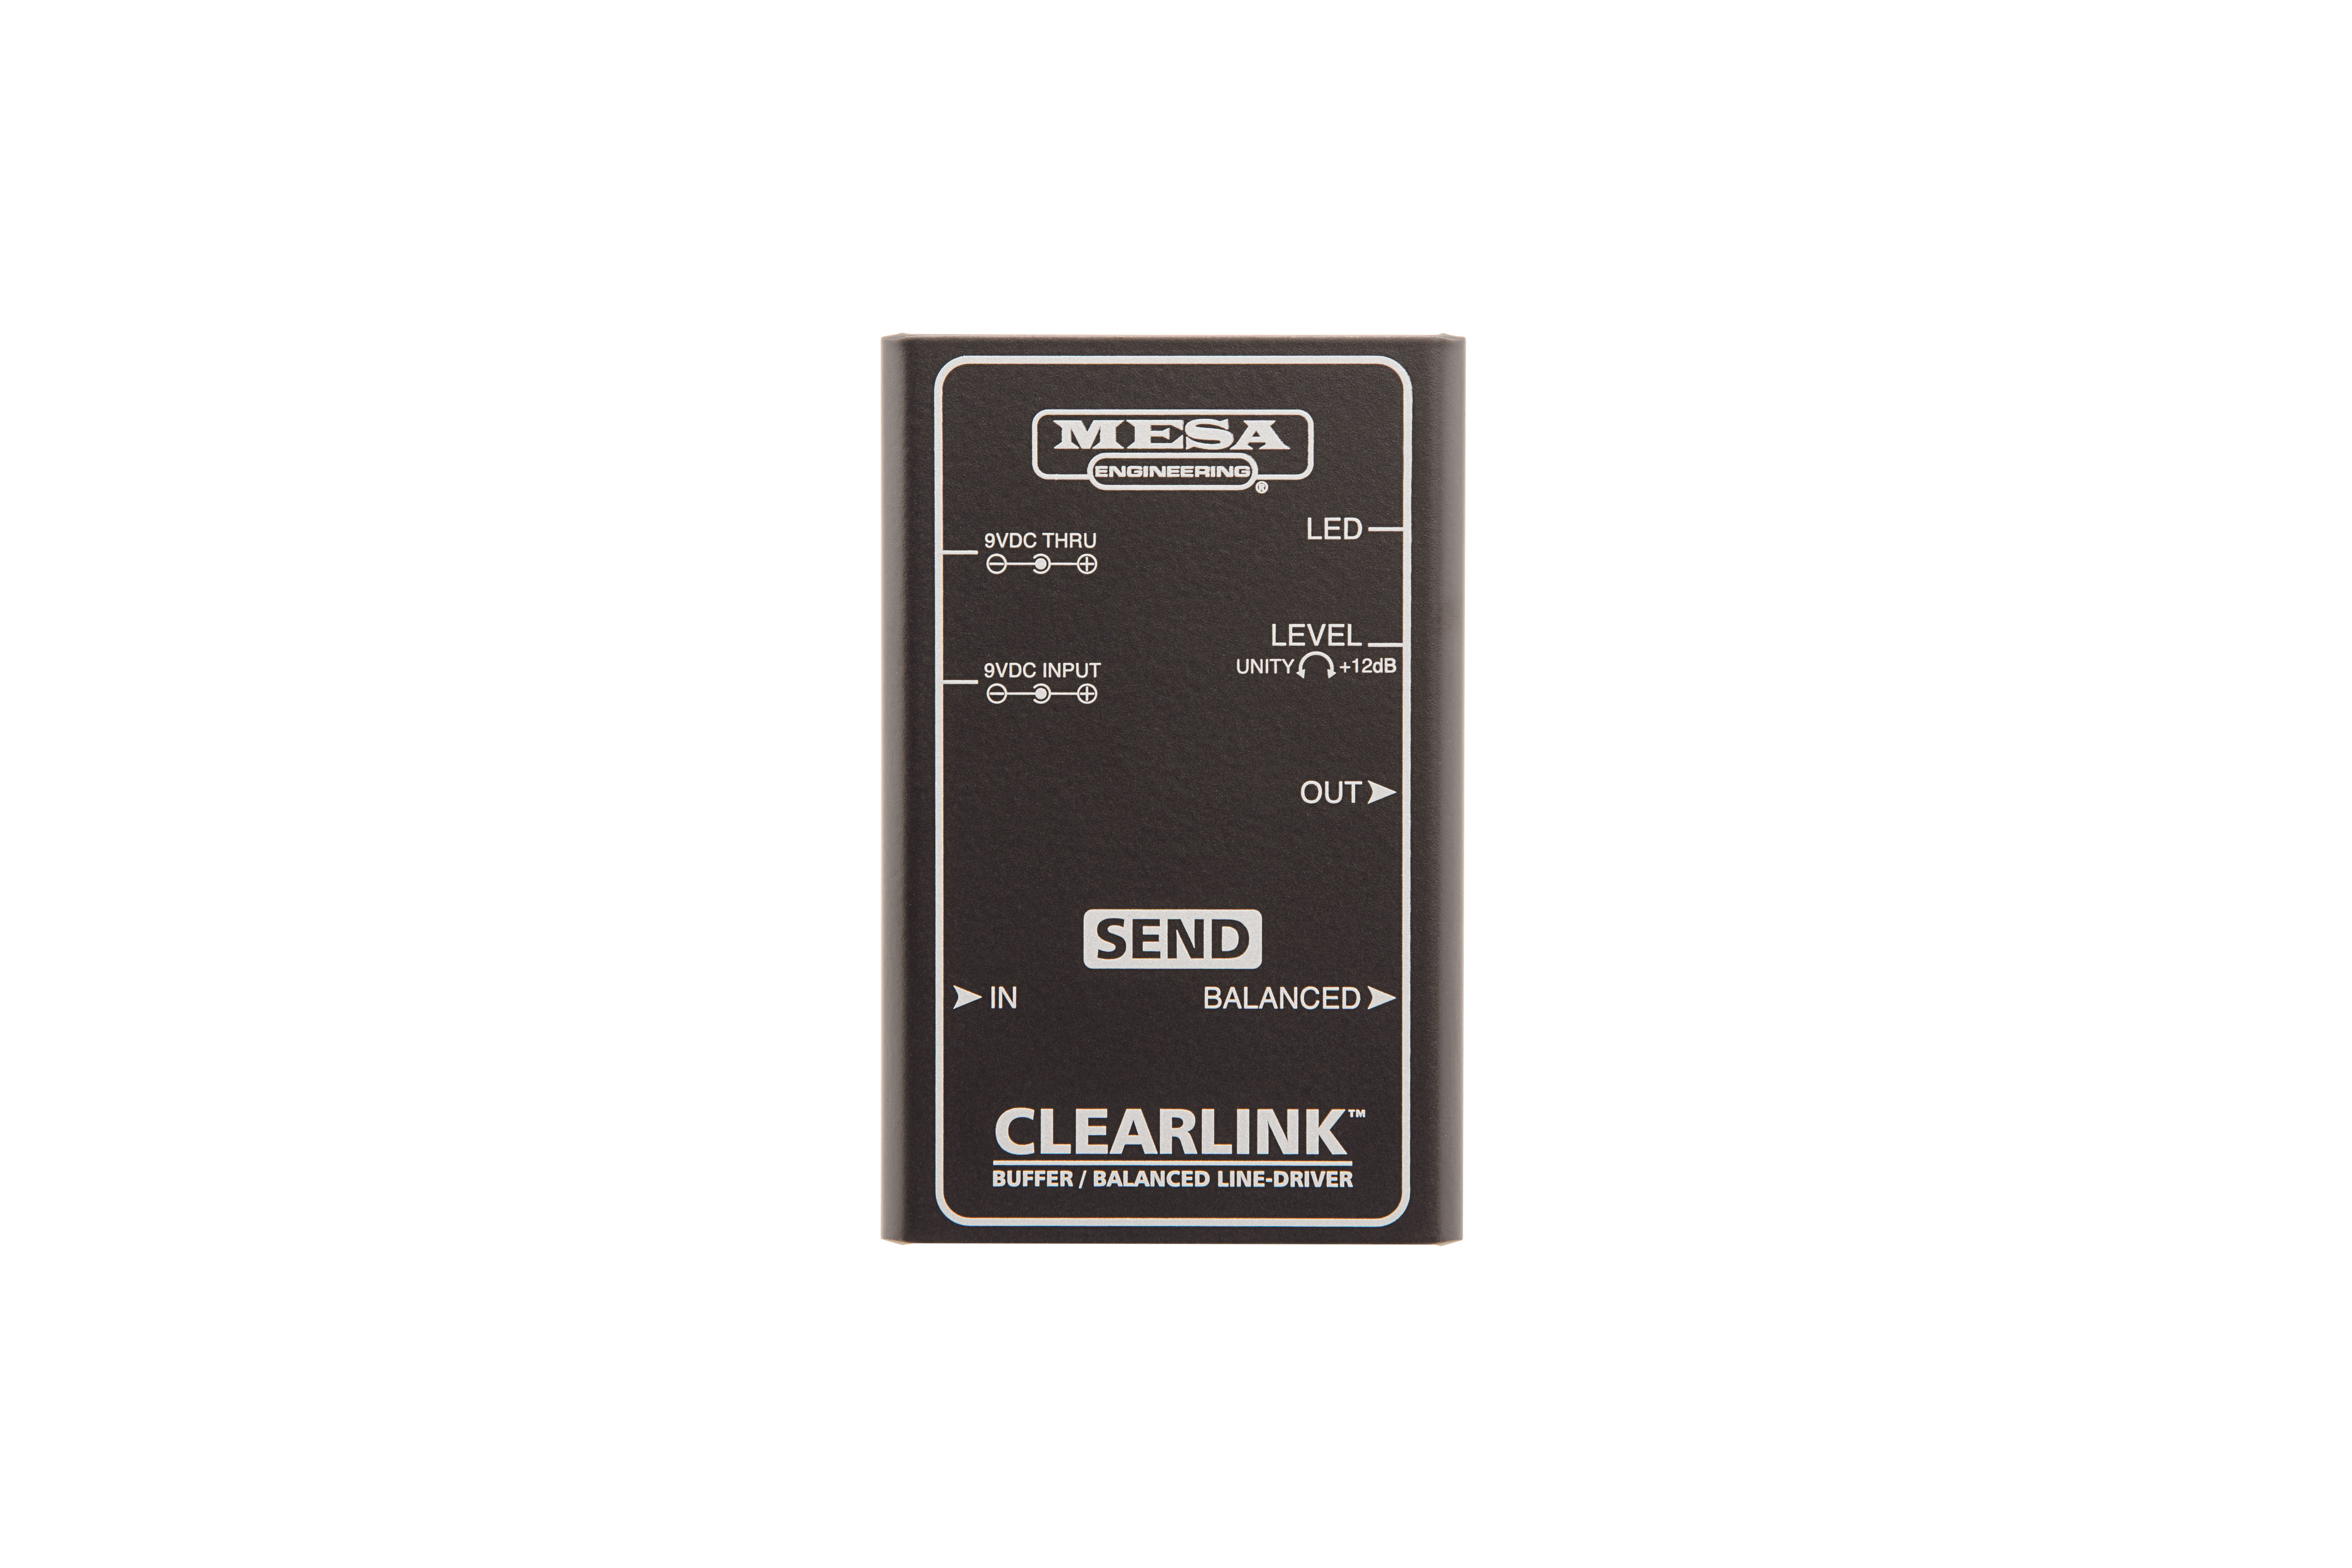 clearlink-buffer-wht-front004